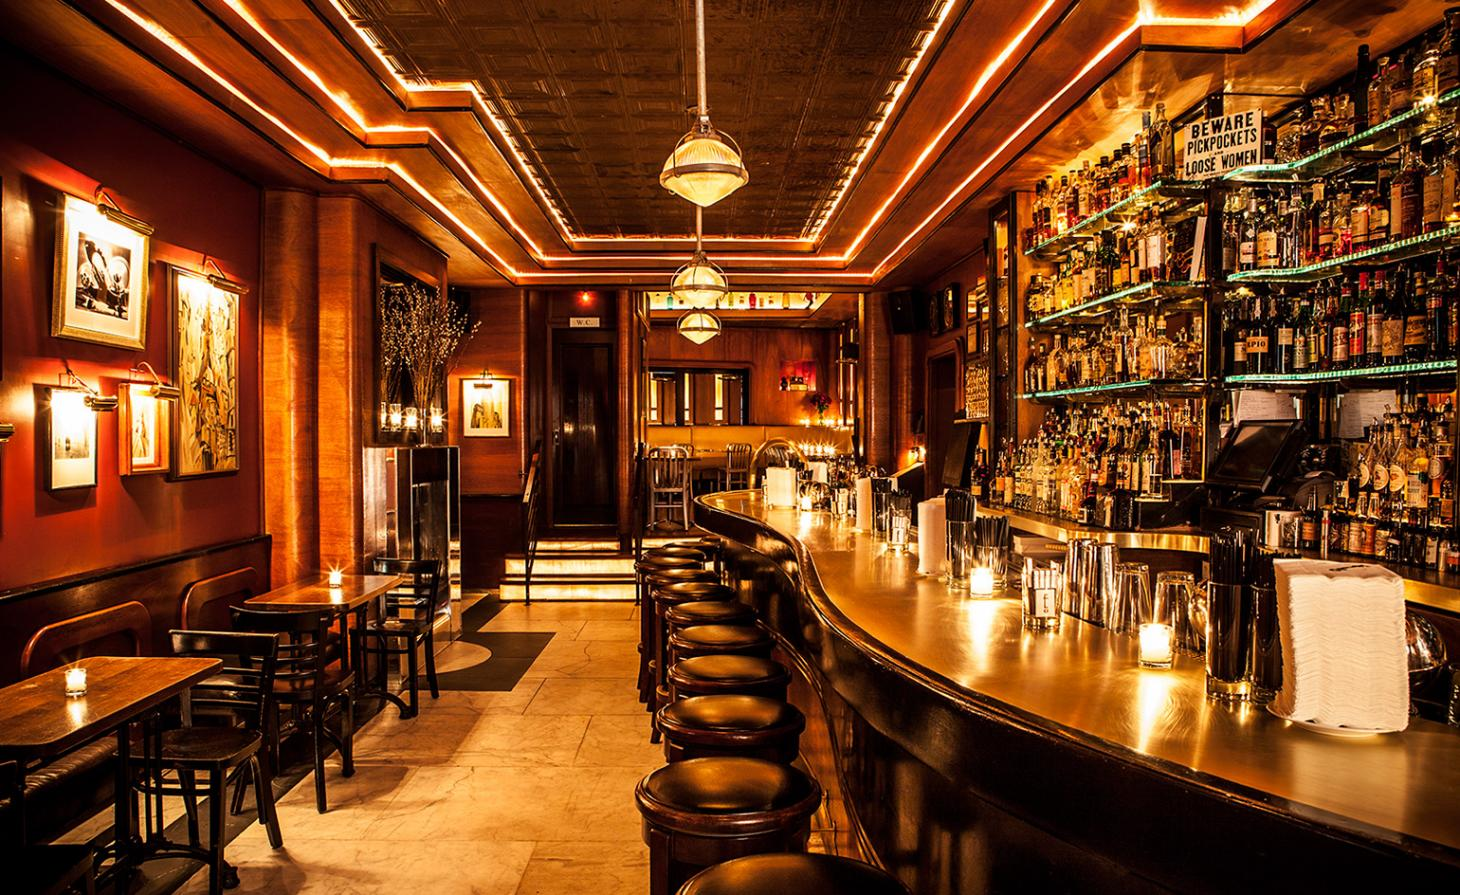 The 13 best NYC secret bars and speakeasies, and how to find them